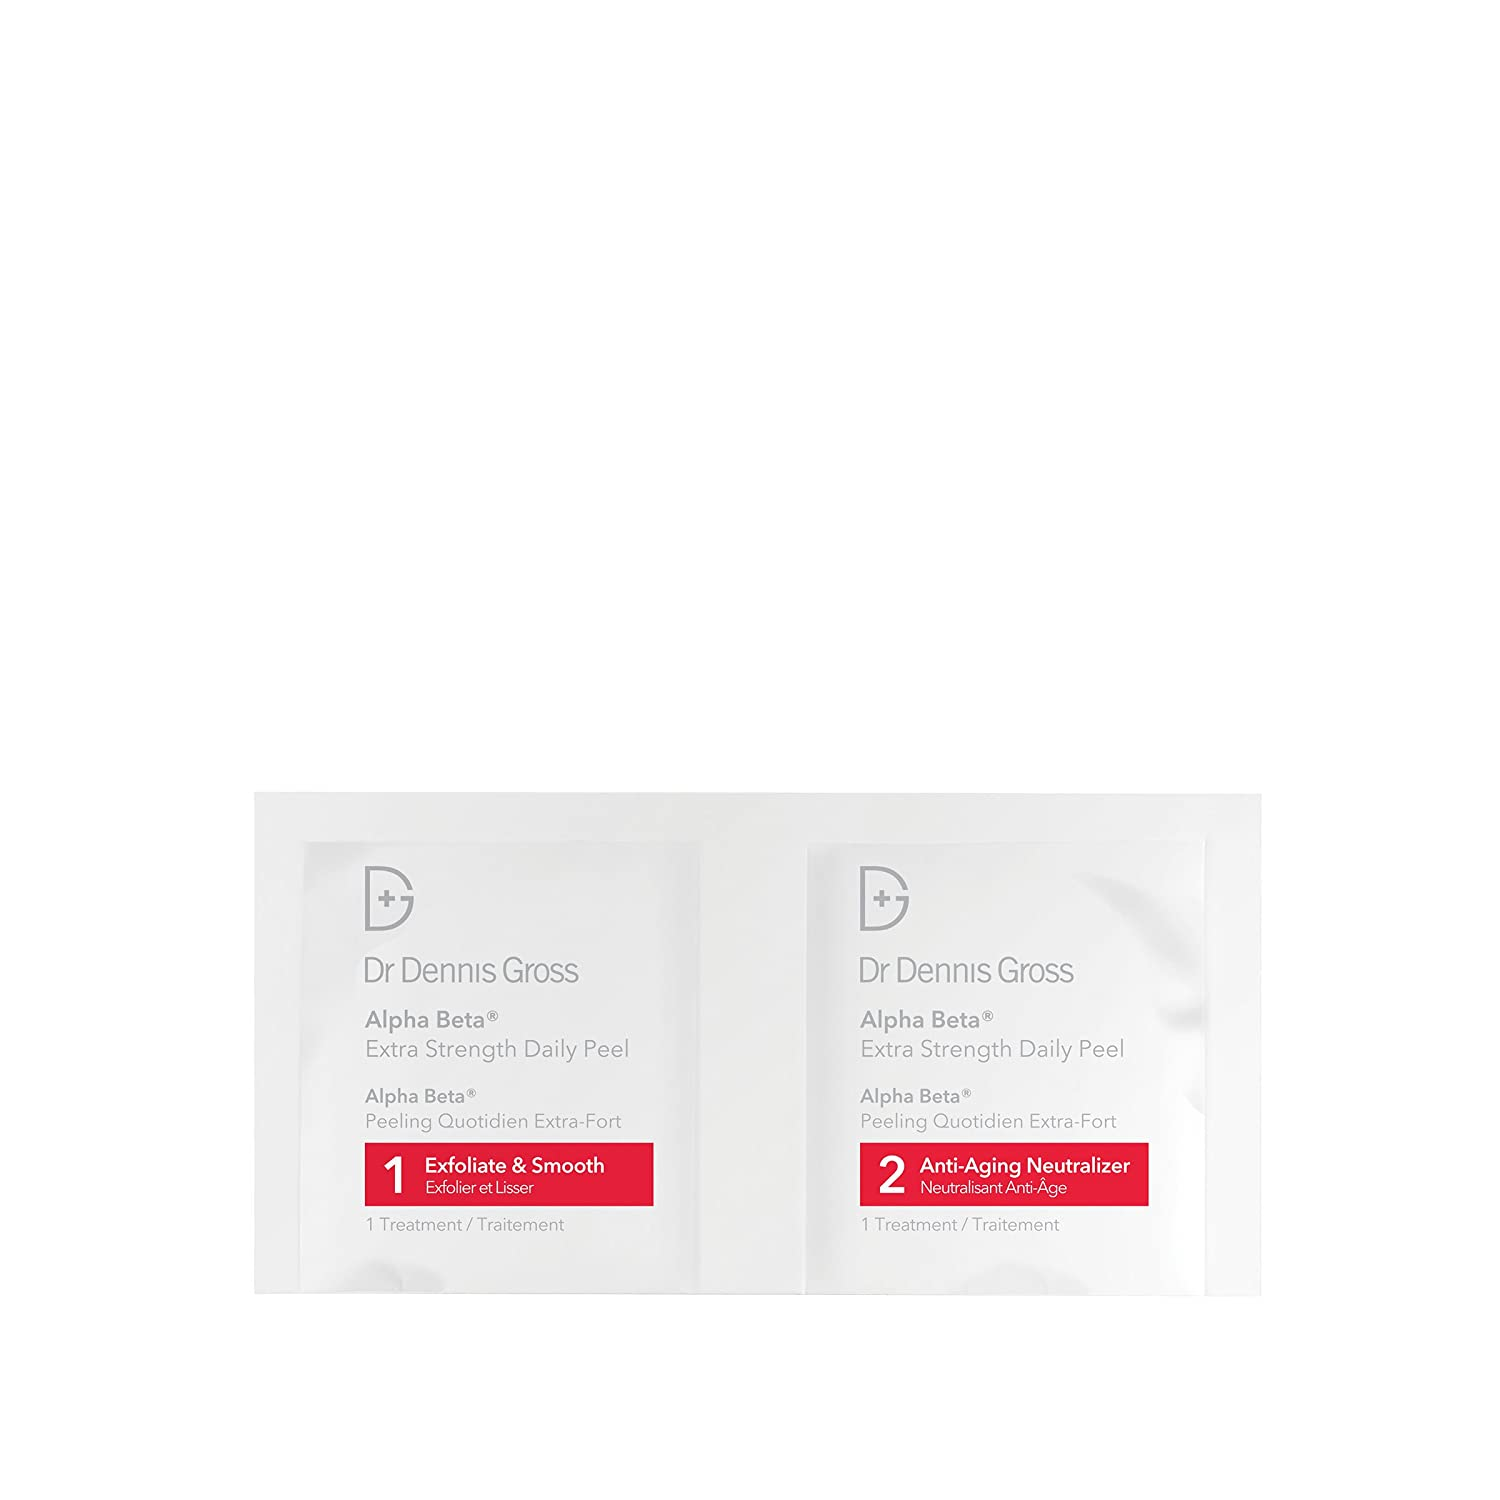 Dr Dennis Gross Alpha Beta Daily Peel extra Strength Formula packettes, 60 unidades: Amazon.es: Belleza